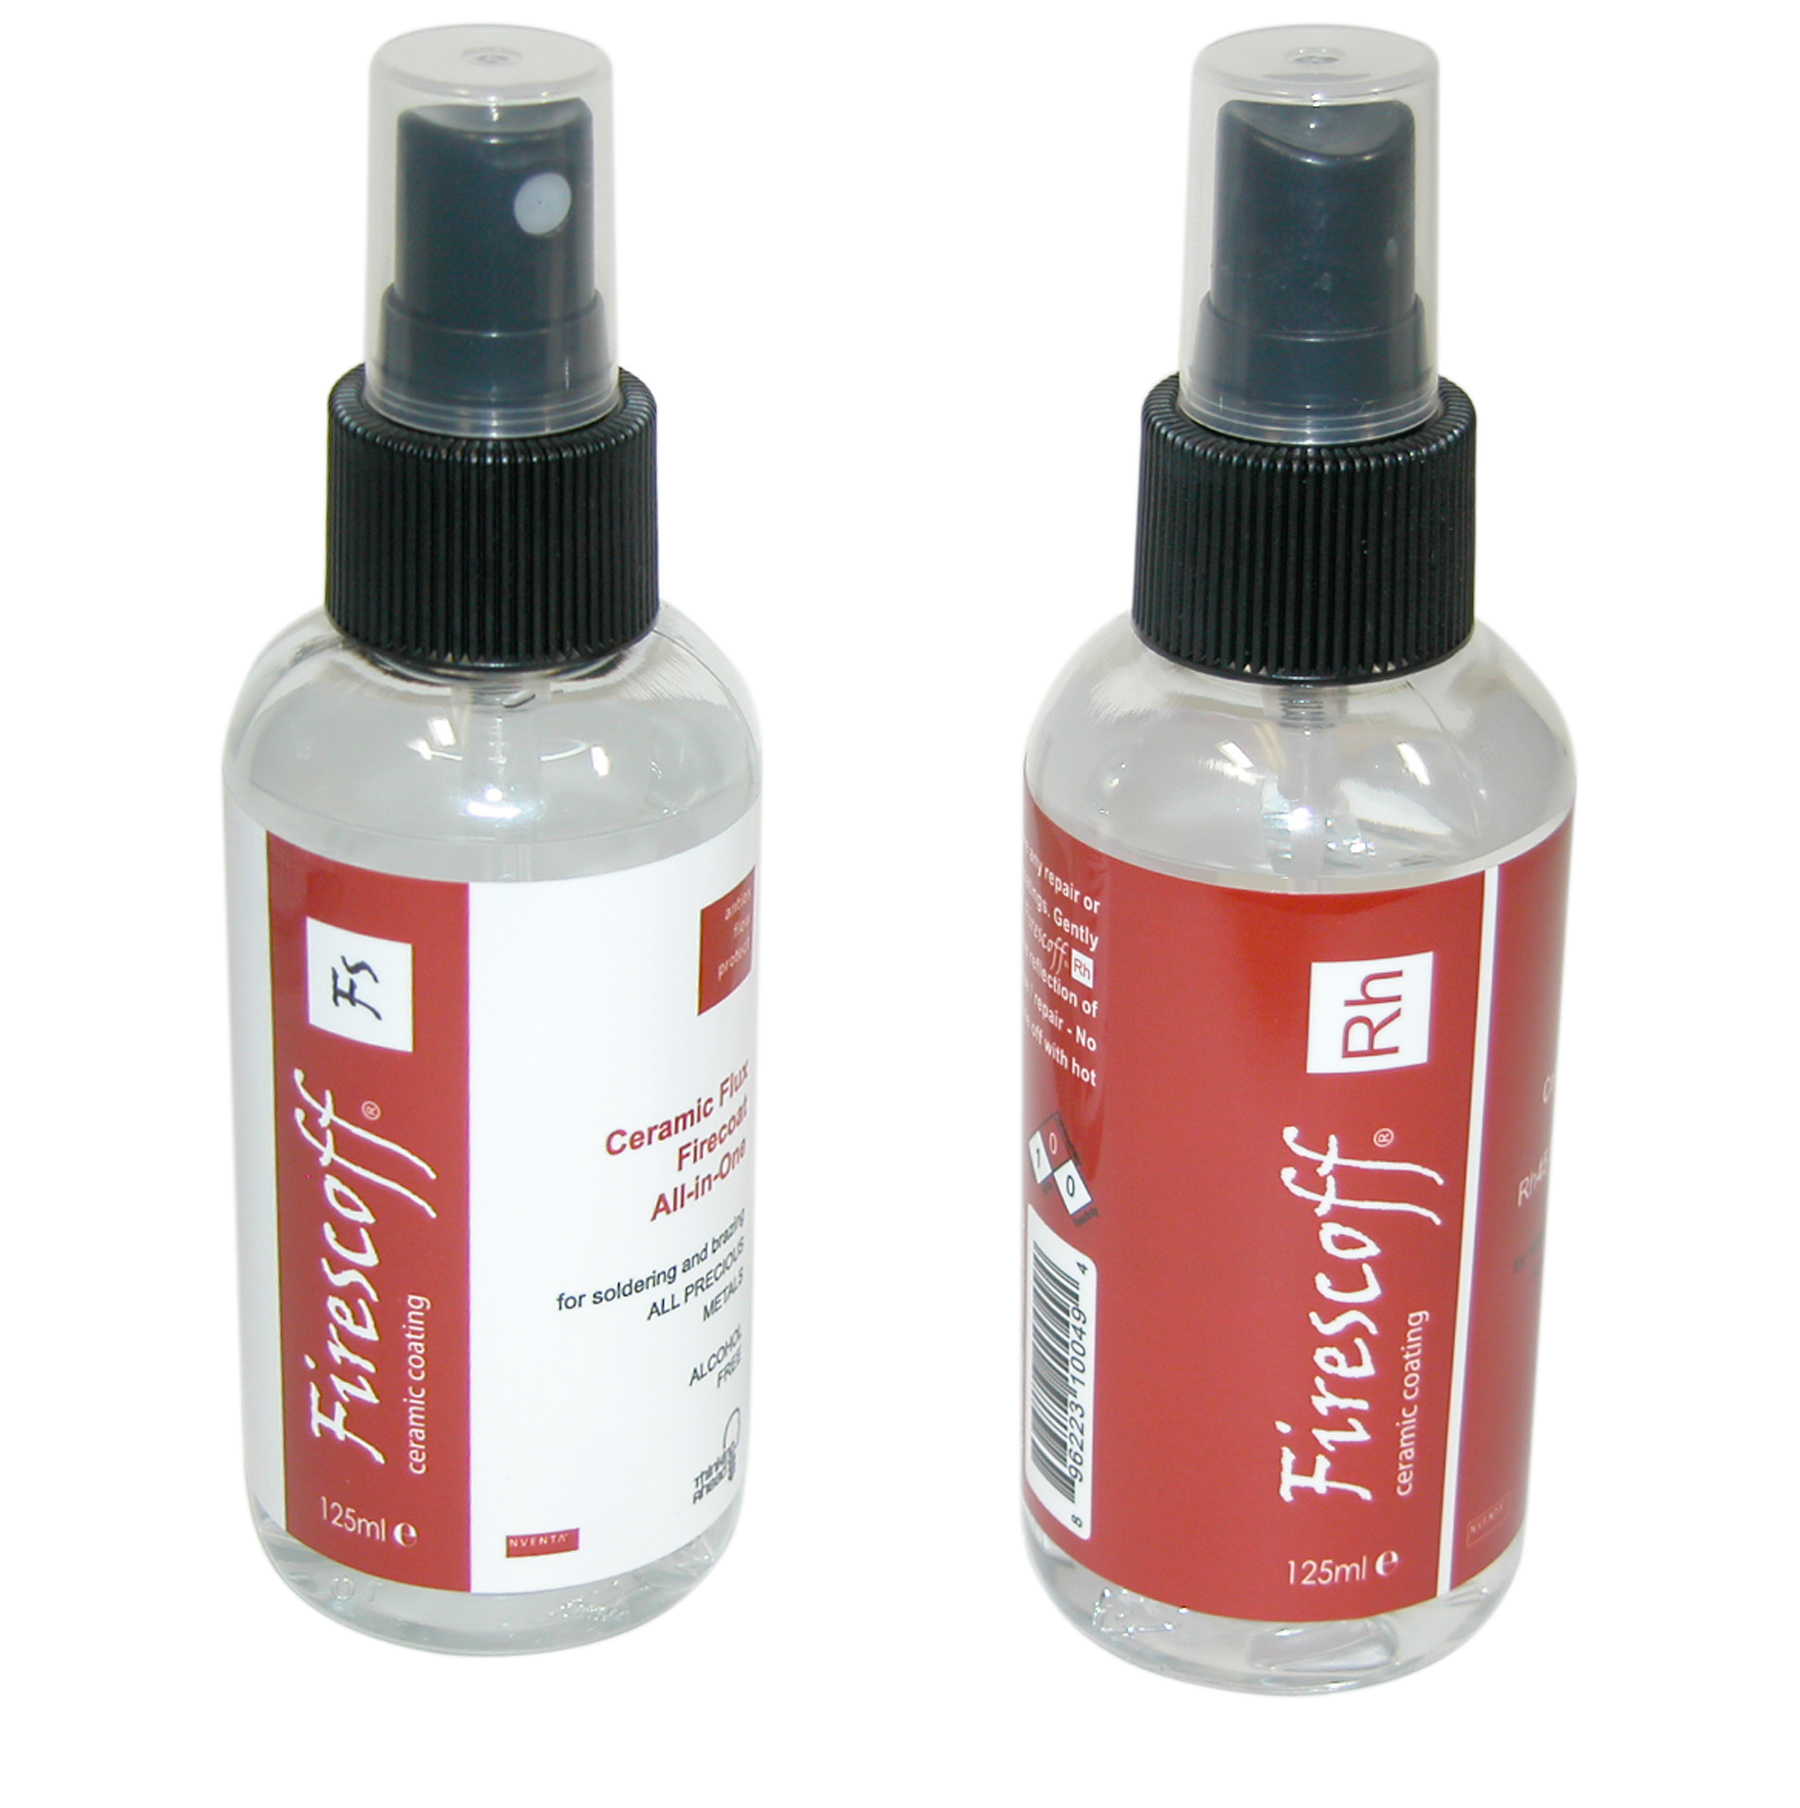 SO54.485 Firescoff Spray Ceramic Flux 125ml bottle